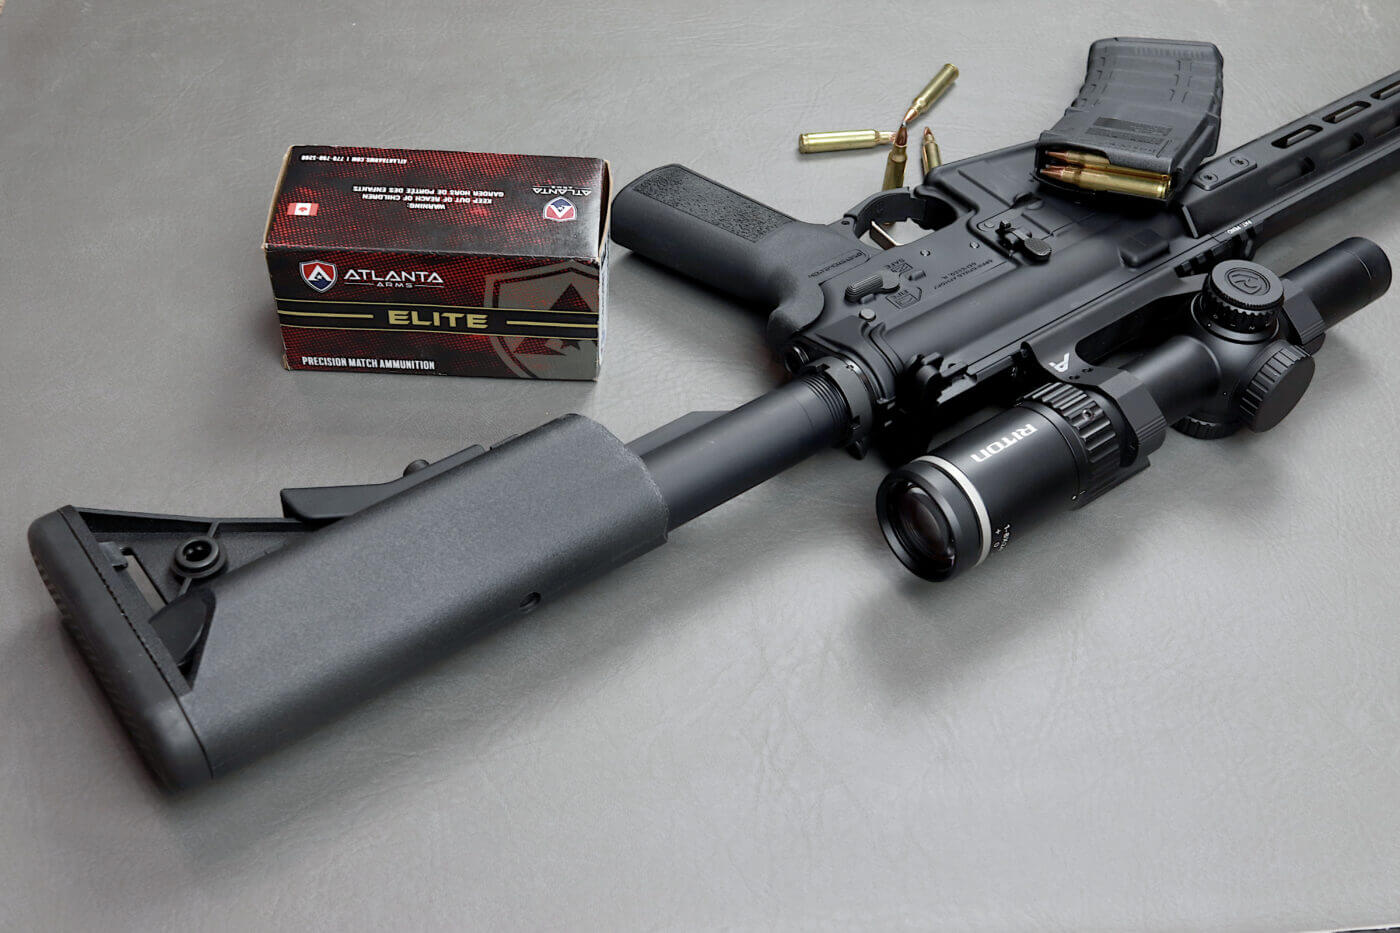 Atlanta Arms ammo with SAINT Victor rifle with Riton scope mounted